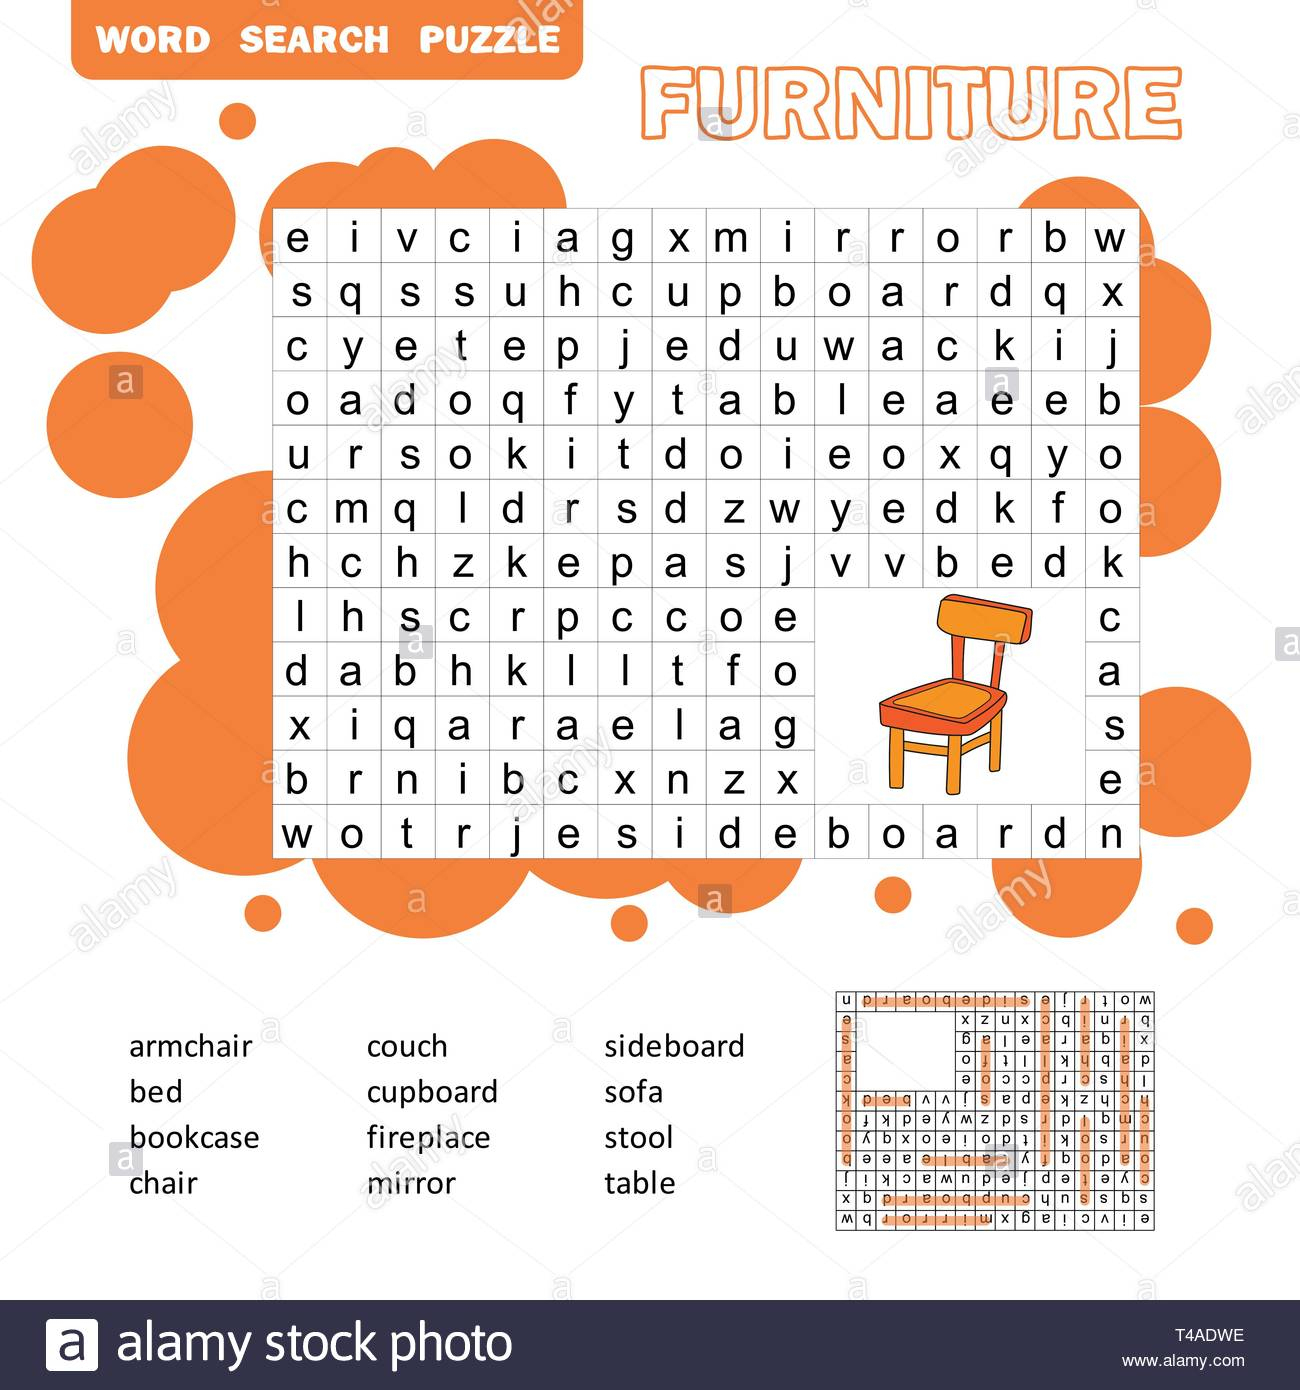 Crossword - Living Room Furniture - Learning English Words. Word - Printable Crossword Puzzles For Learning English